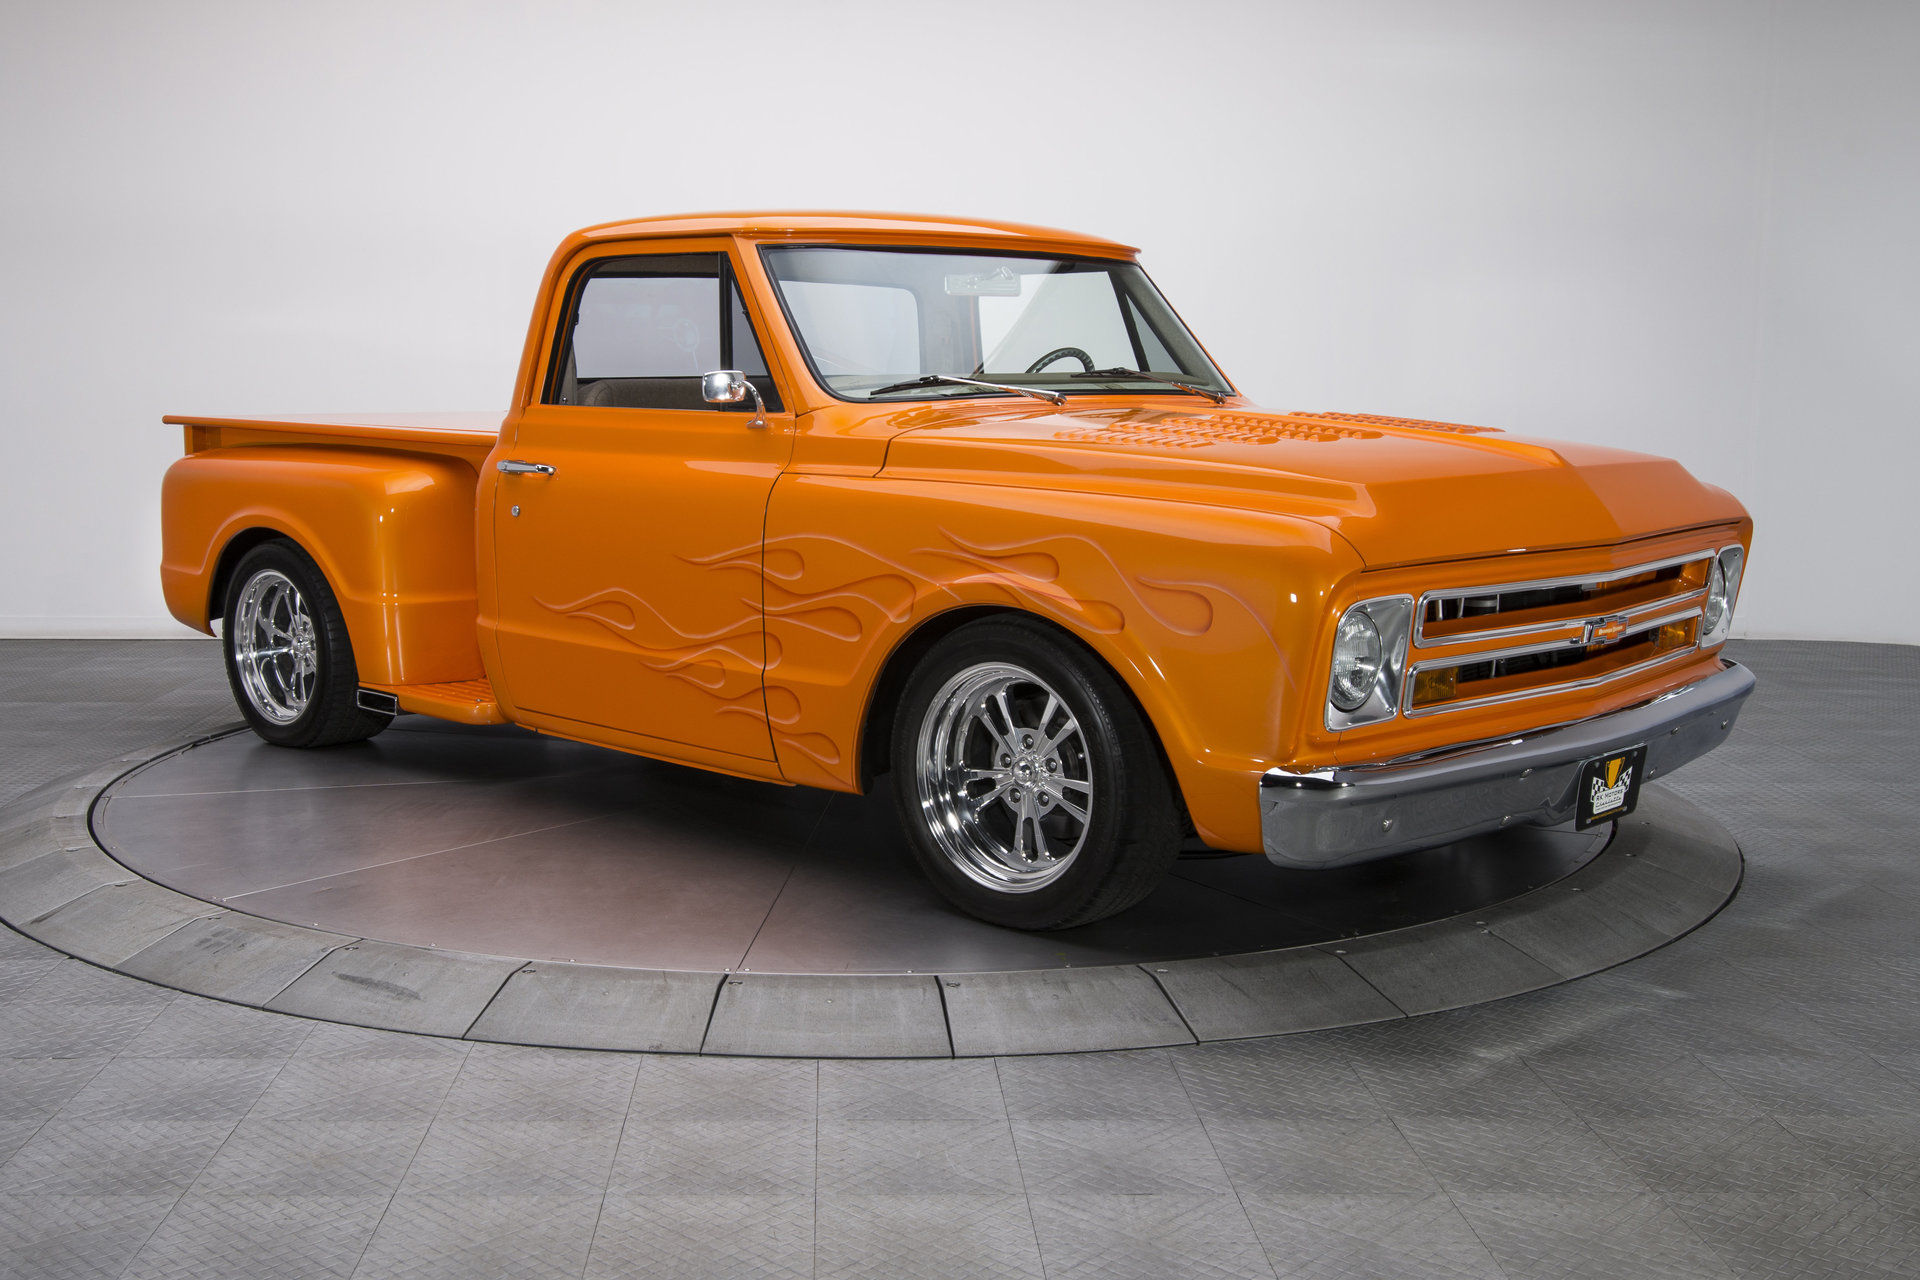 1968 Chevy C10 Stepside Chevrolet Motors Classic And Performance Cars 1920x1280